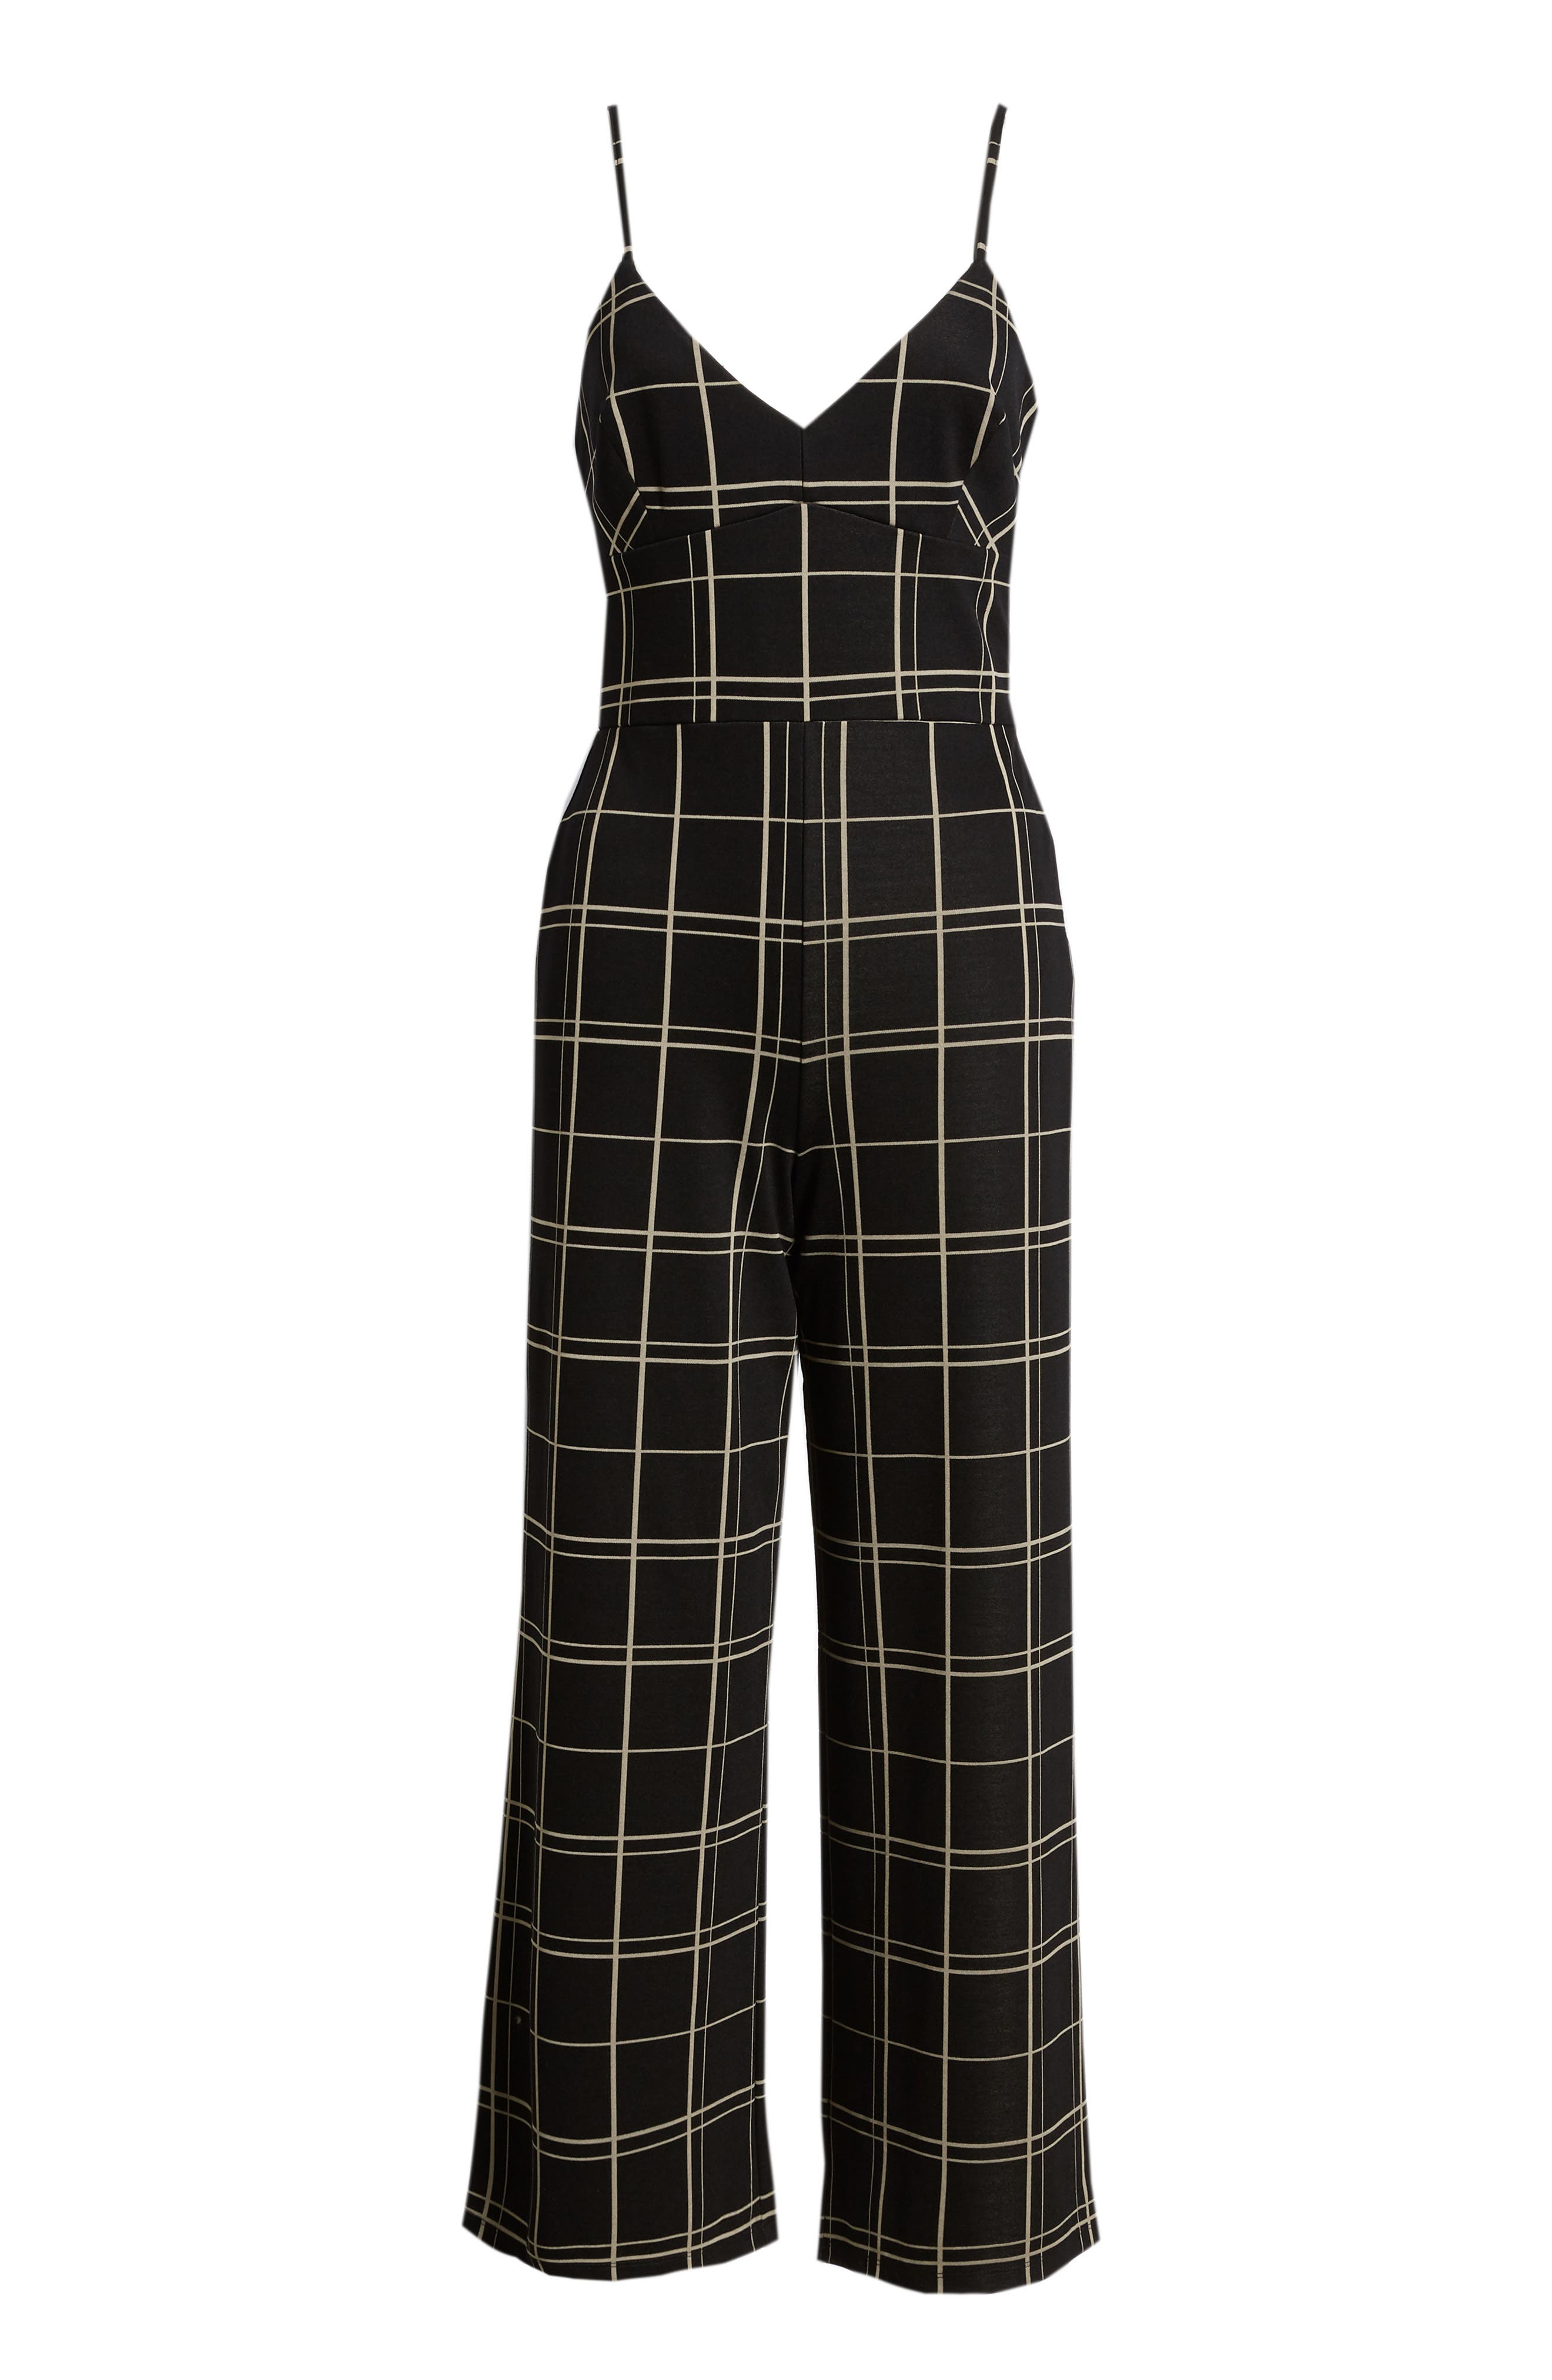 Windowpane Check Jumpsuit,                             Alternate thumbnail 7, color,                             BLACK GLAM CITY WINDOWS